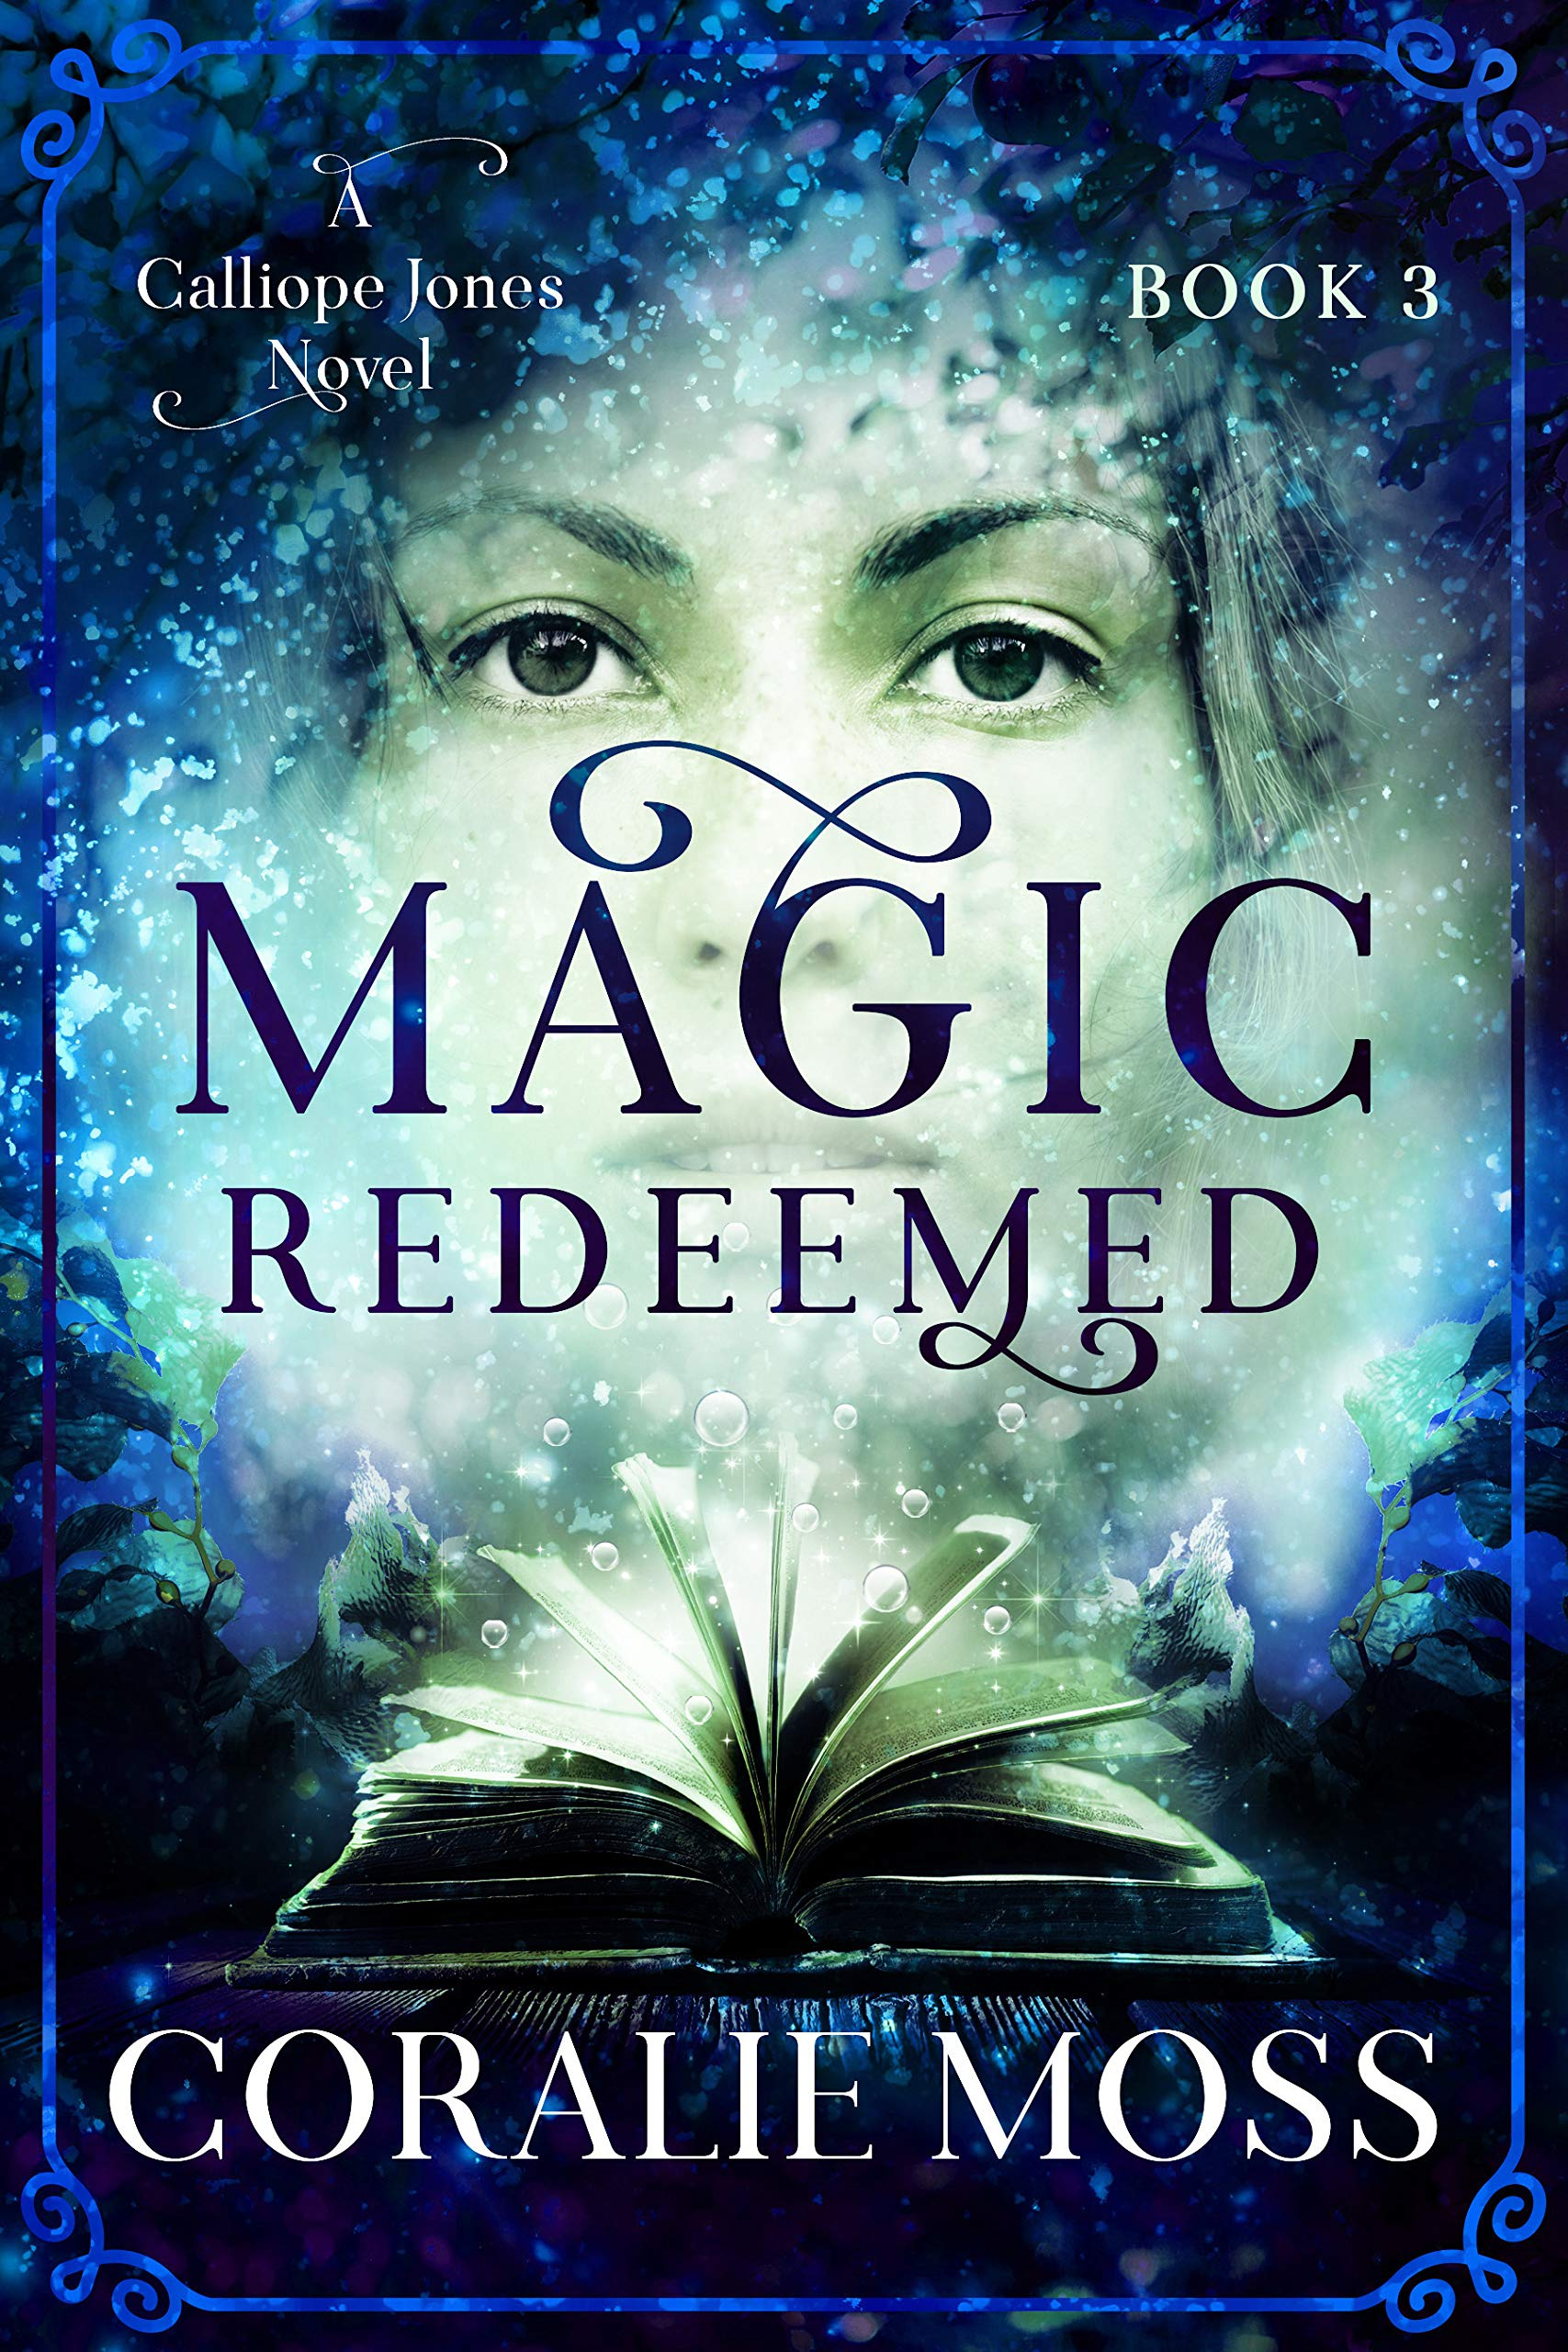 Magic Redeemed: A Calliope Jones Novel